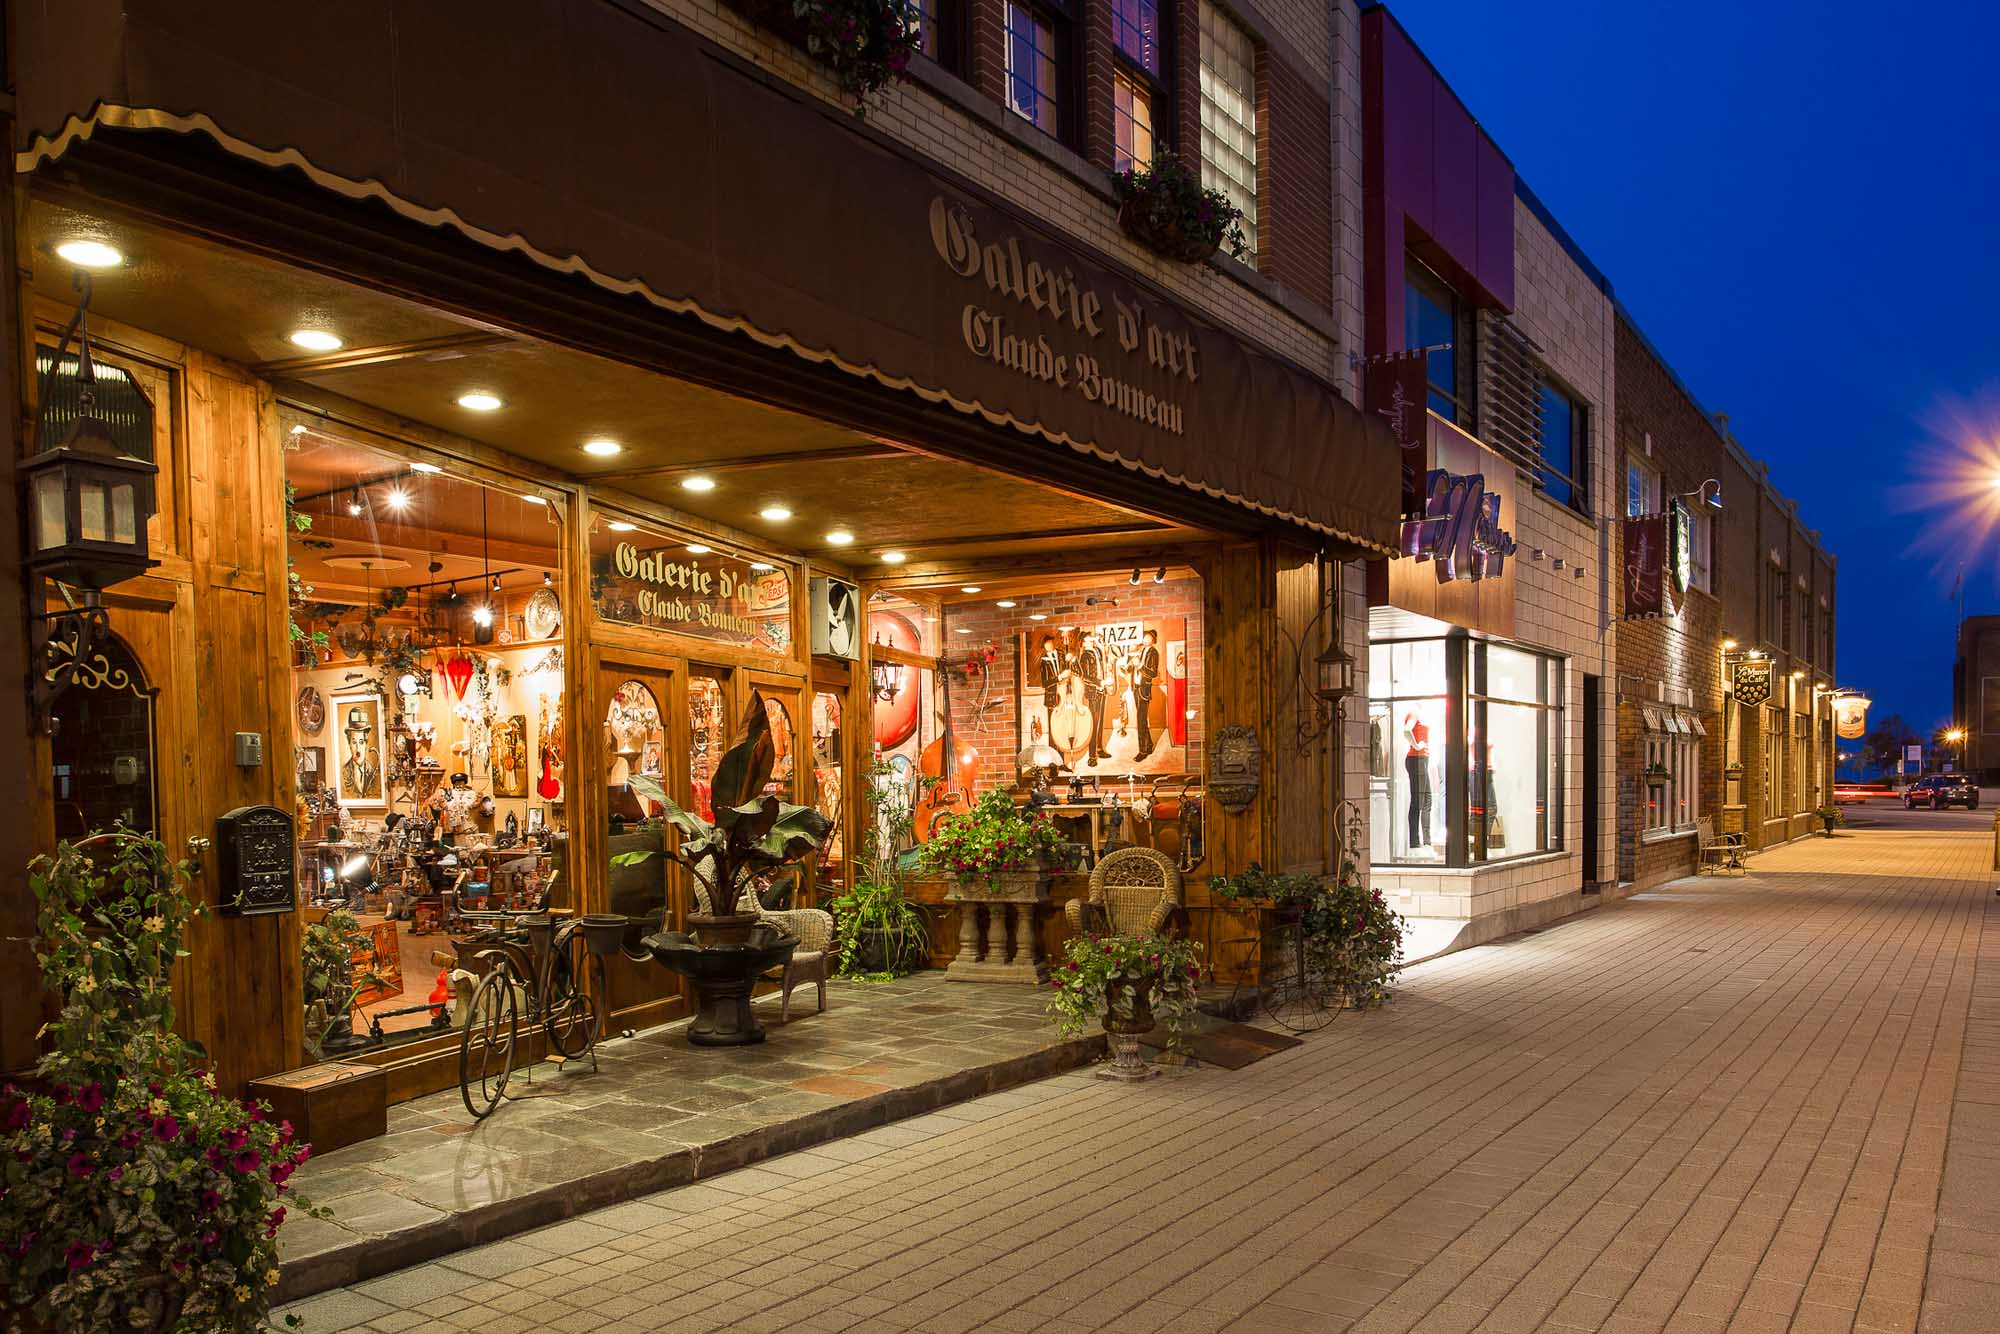 An art gallery and shops in the city center of Baie-Comeau, a town 260 miles northeast of Quebec City in the Cote-Nord region of Quebec, Canada.